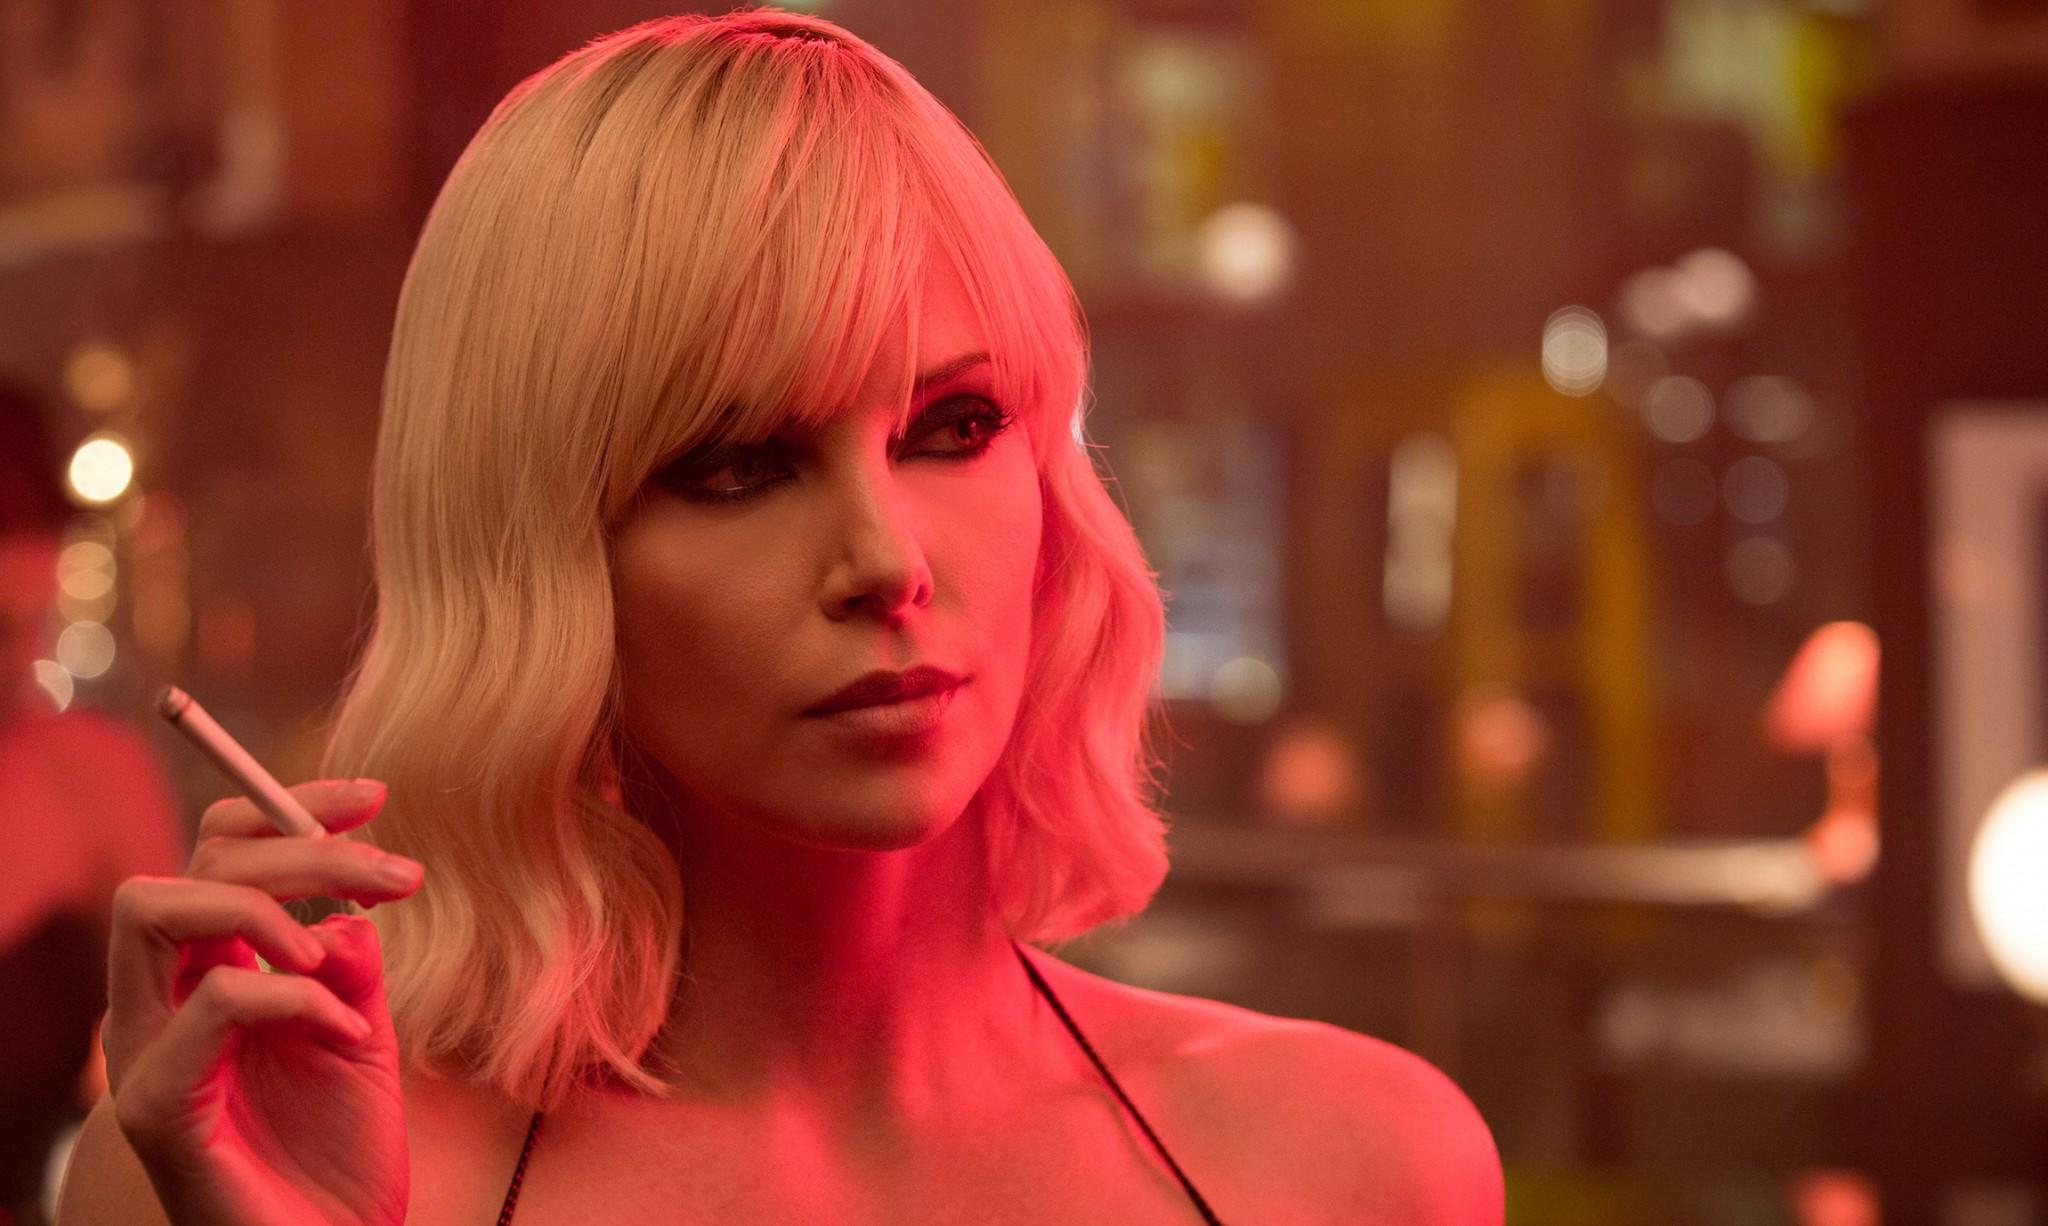 Charlize Theron as MI6 agent Lorraine Broughton in 'Atomic Blonde' (credit: Focus Features)